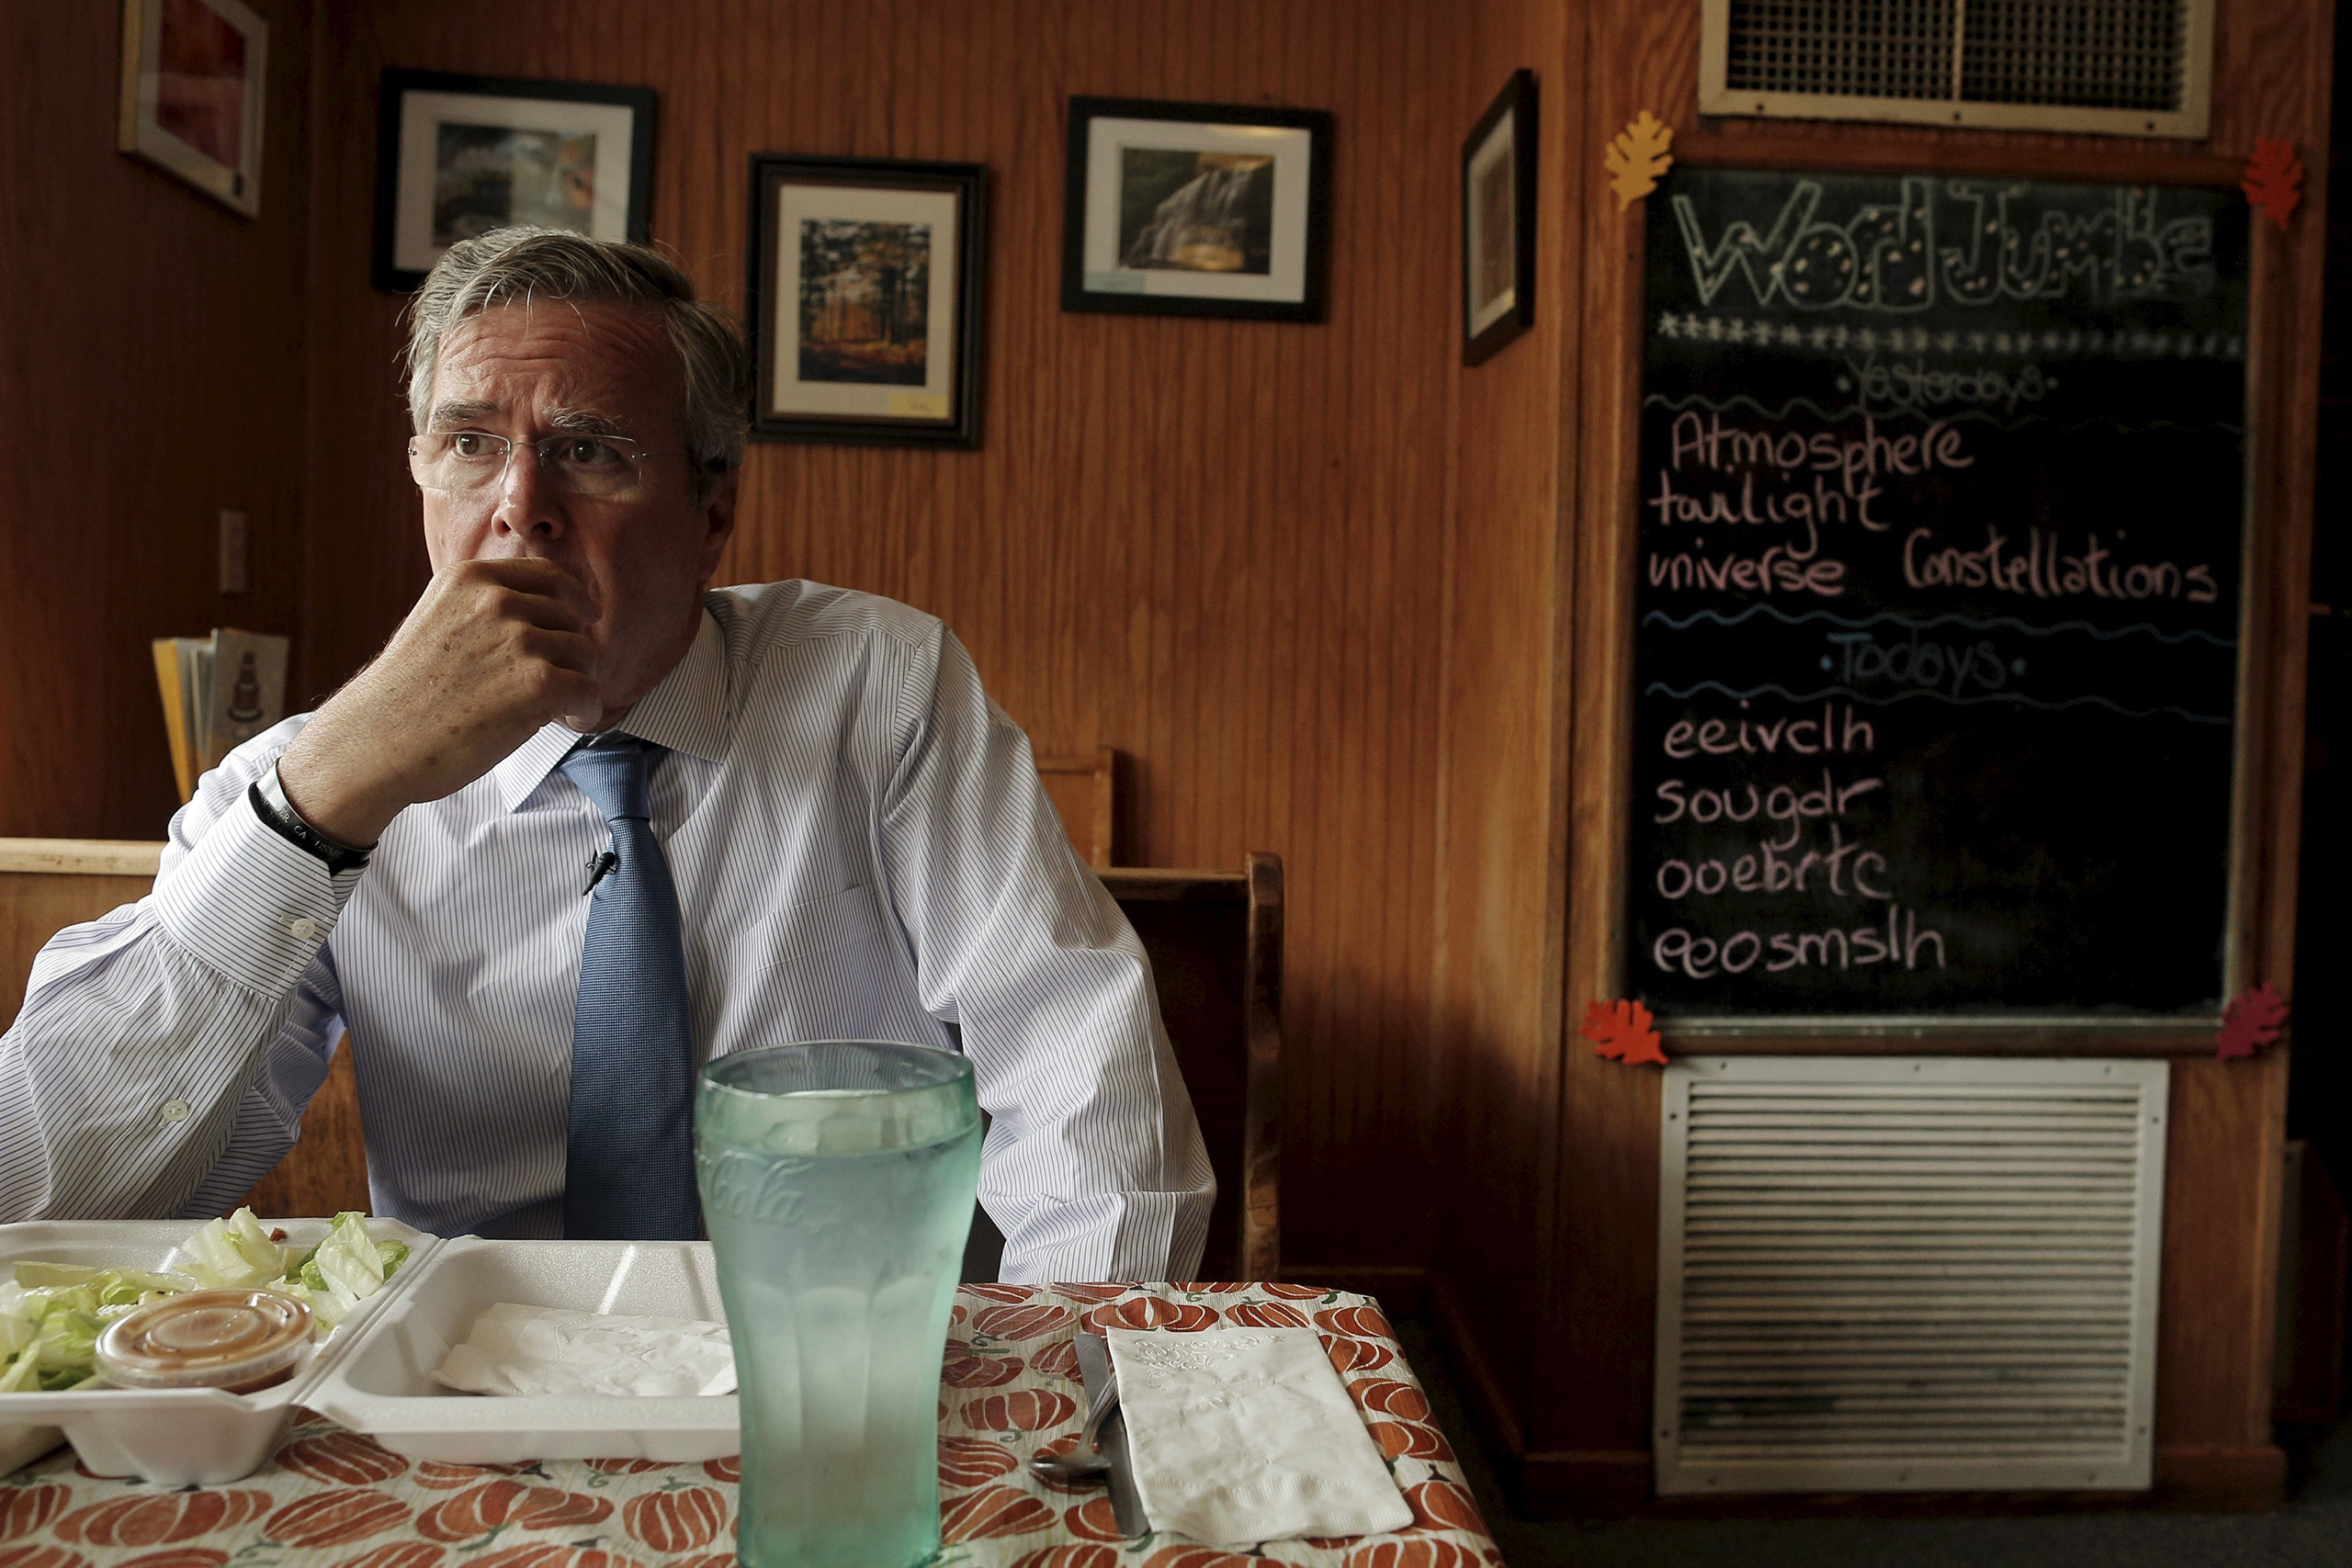 A onetime front runner, Bush campaigns 16-hour days, including a recent stop at a café in Peterborough, N.H.